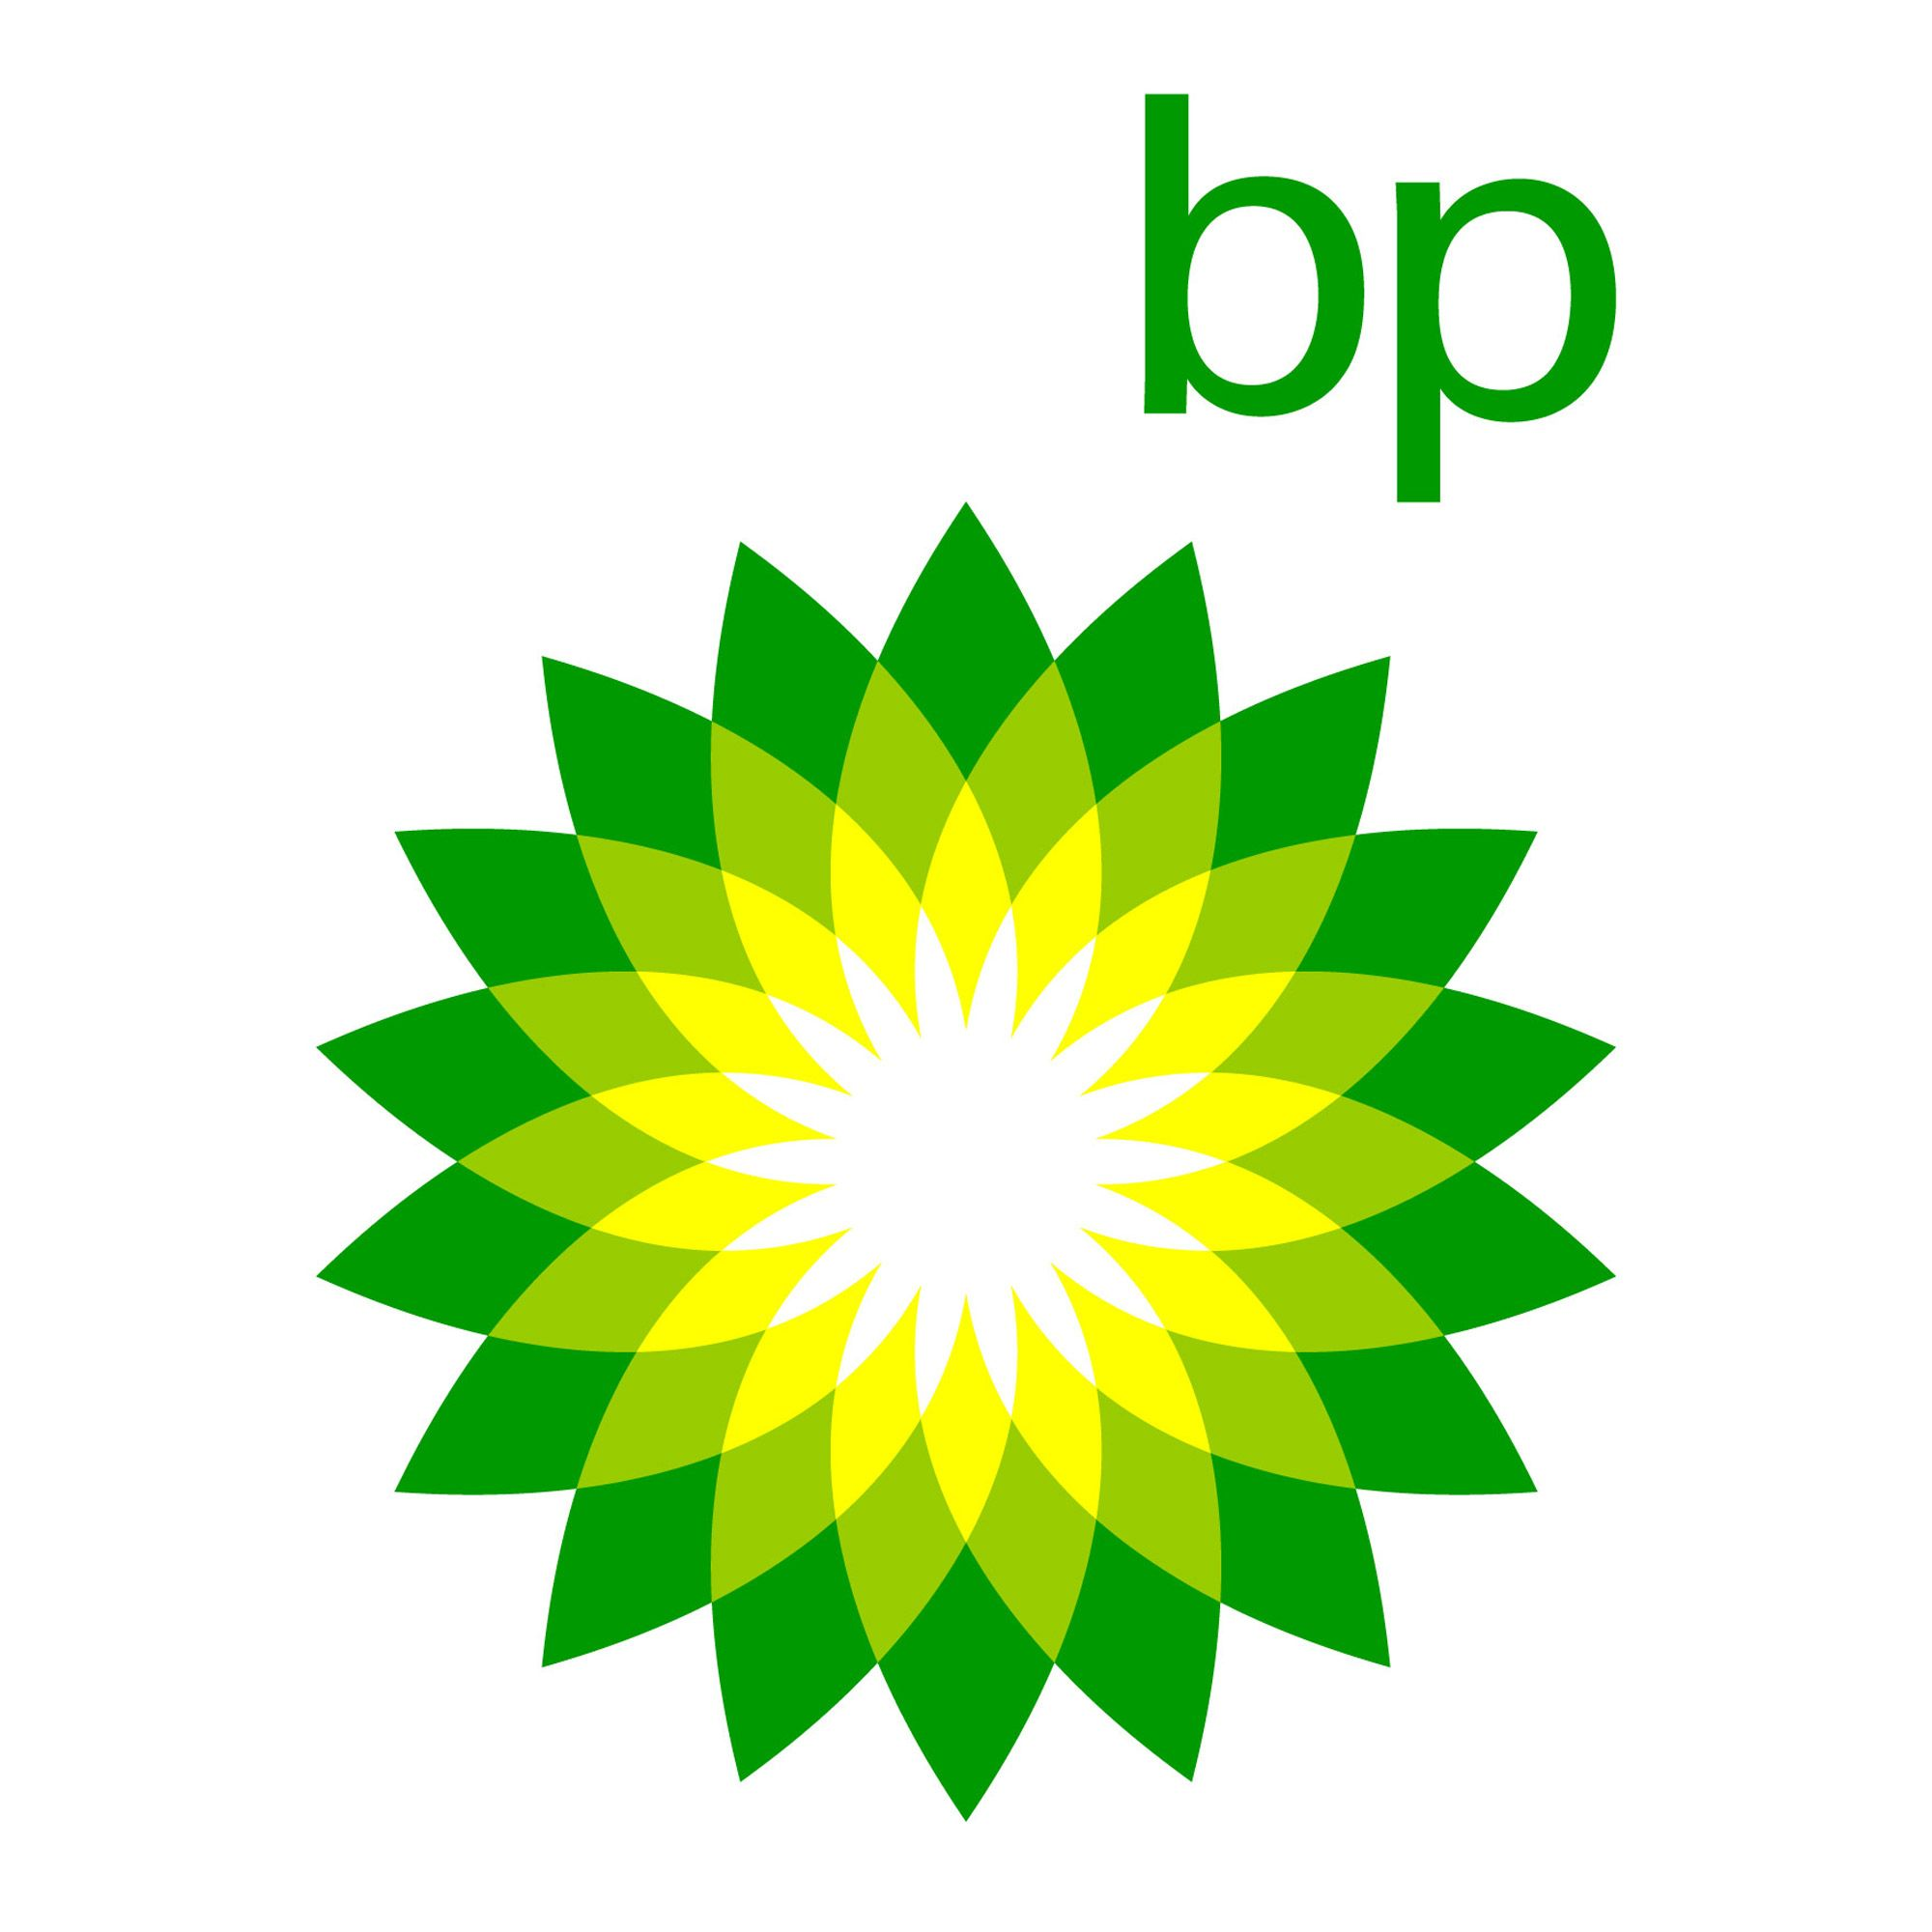 The world s most expensive logo is the British Petroleum BP logo